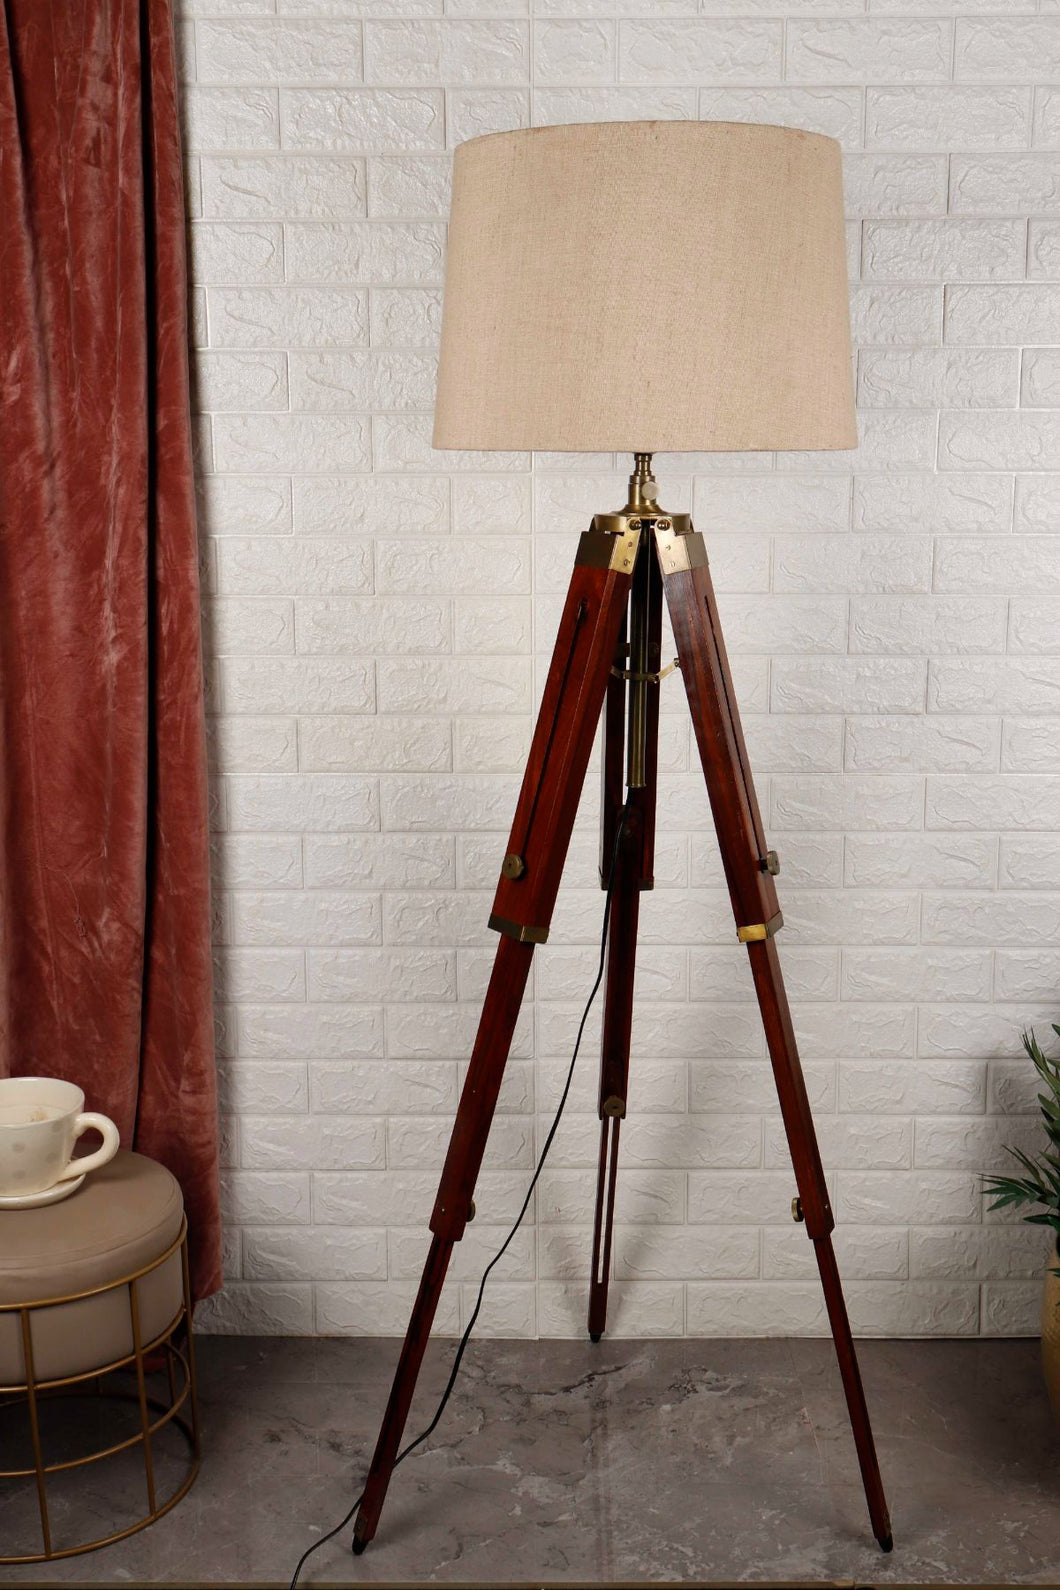 Triple Fold Brass Lamp Stand with Beige Lampshade in [2 Size]